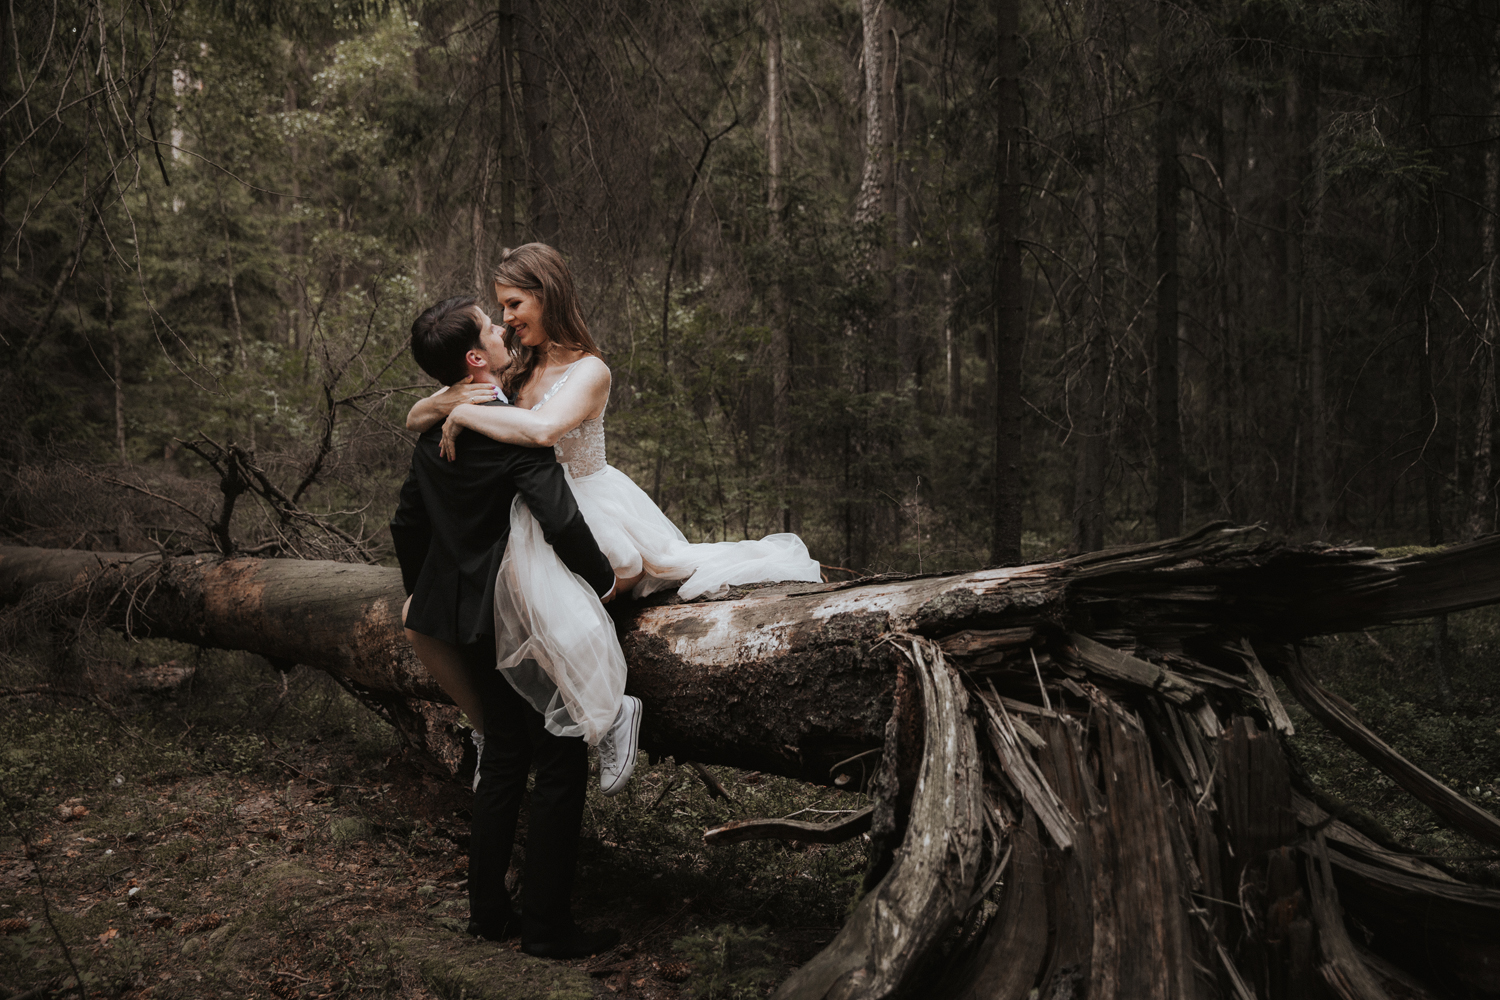 weddingphotograher_klaudia_rafal_nationalpark_512.jpg